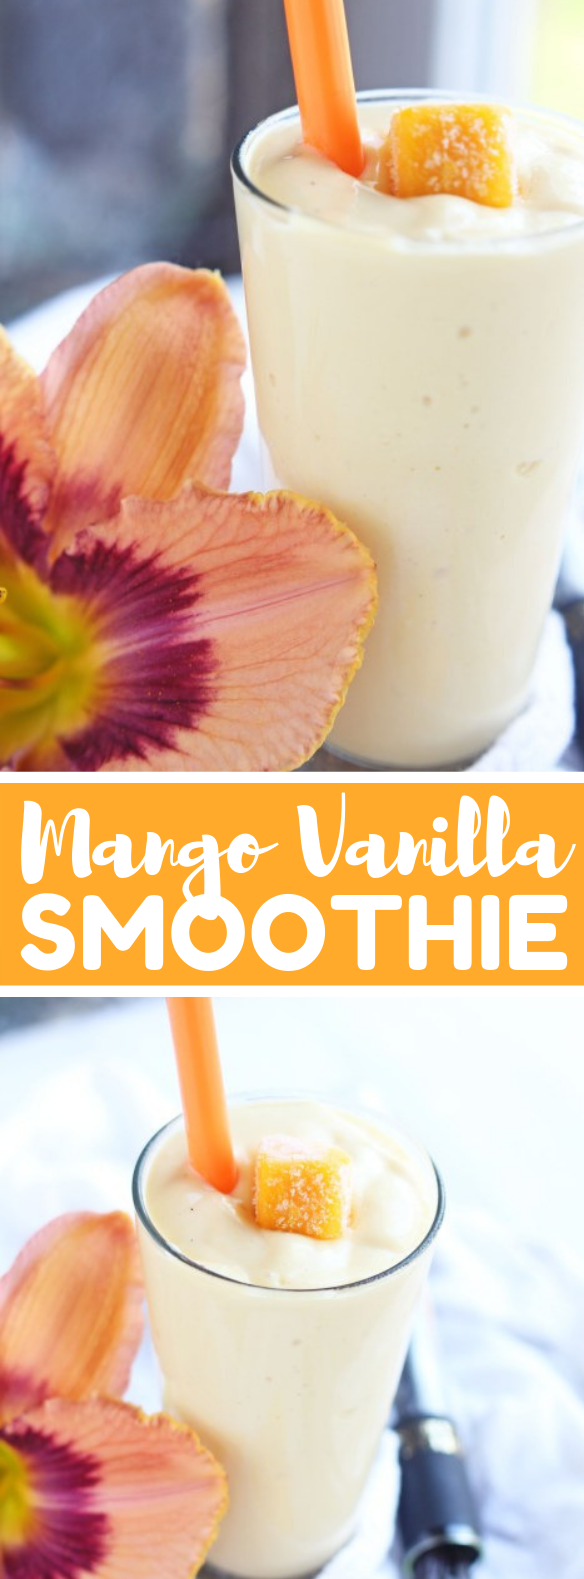 MANGO VANILLA SMOOTHIE #drinks #healthydrink